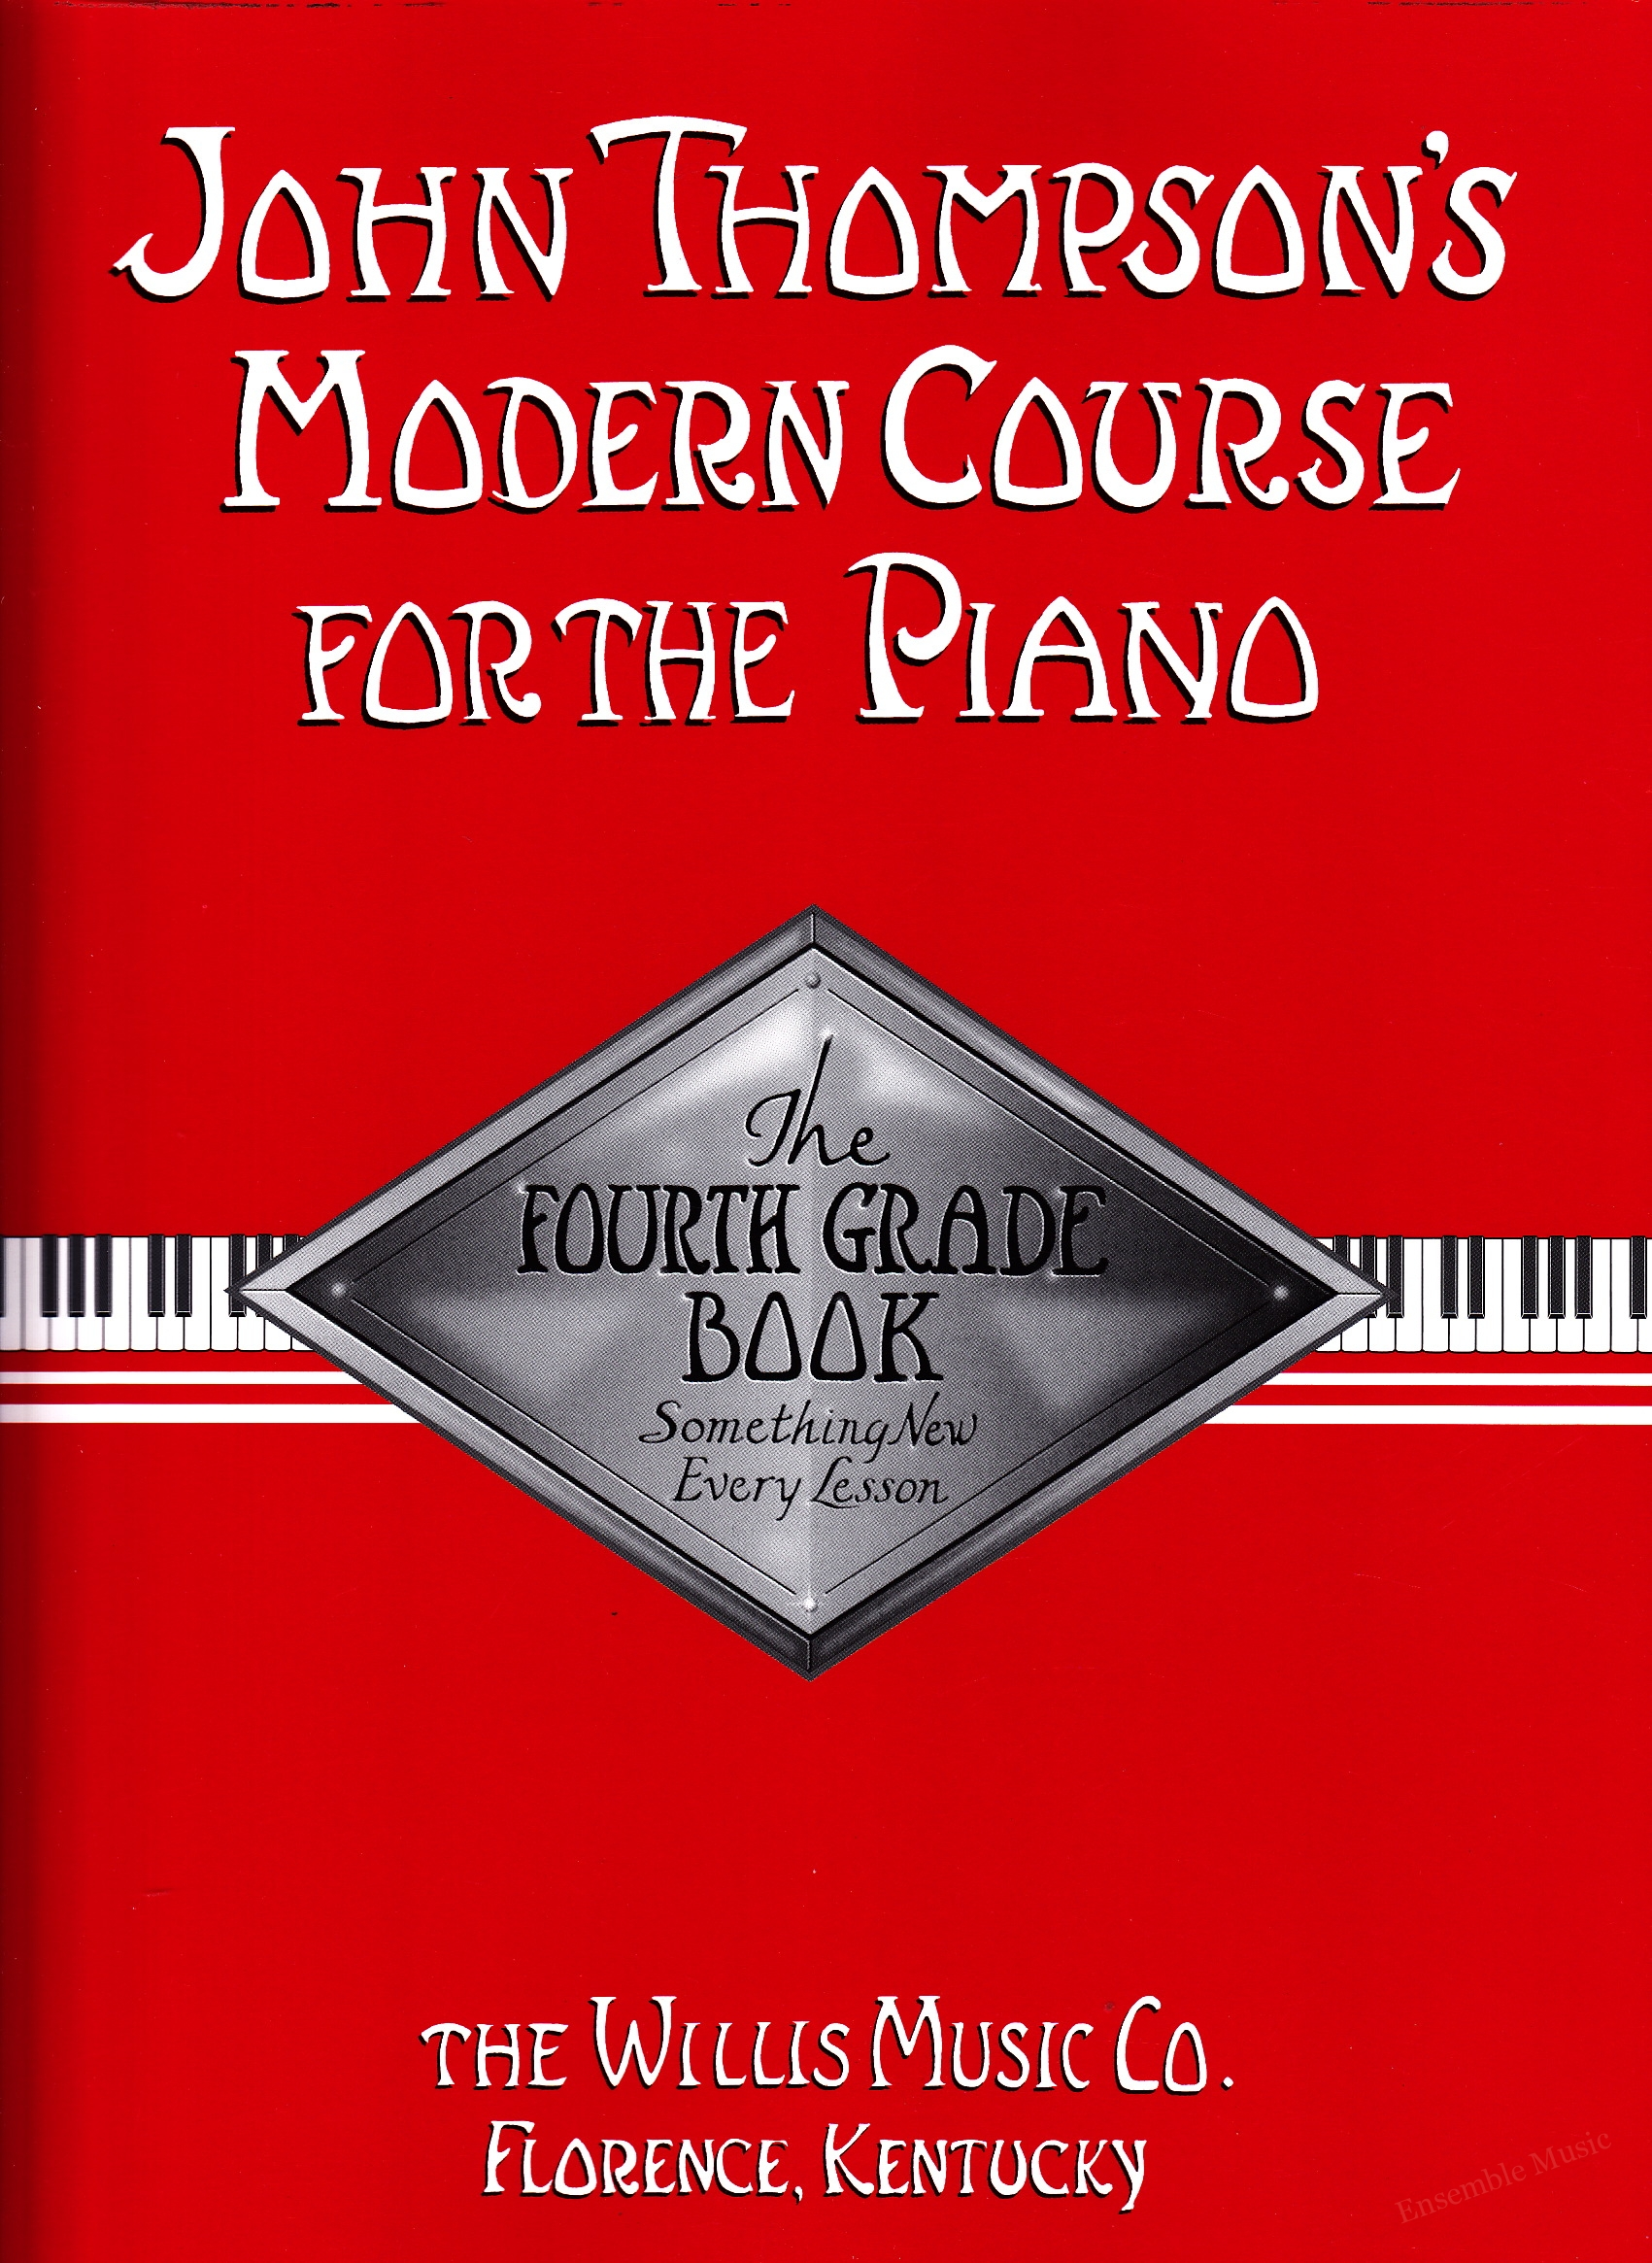 John Thompsons Modern Course for the PianoThe Fourth Grade Book